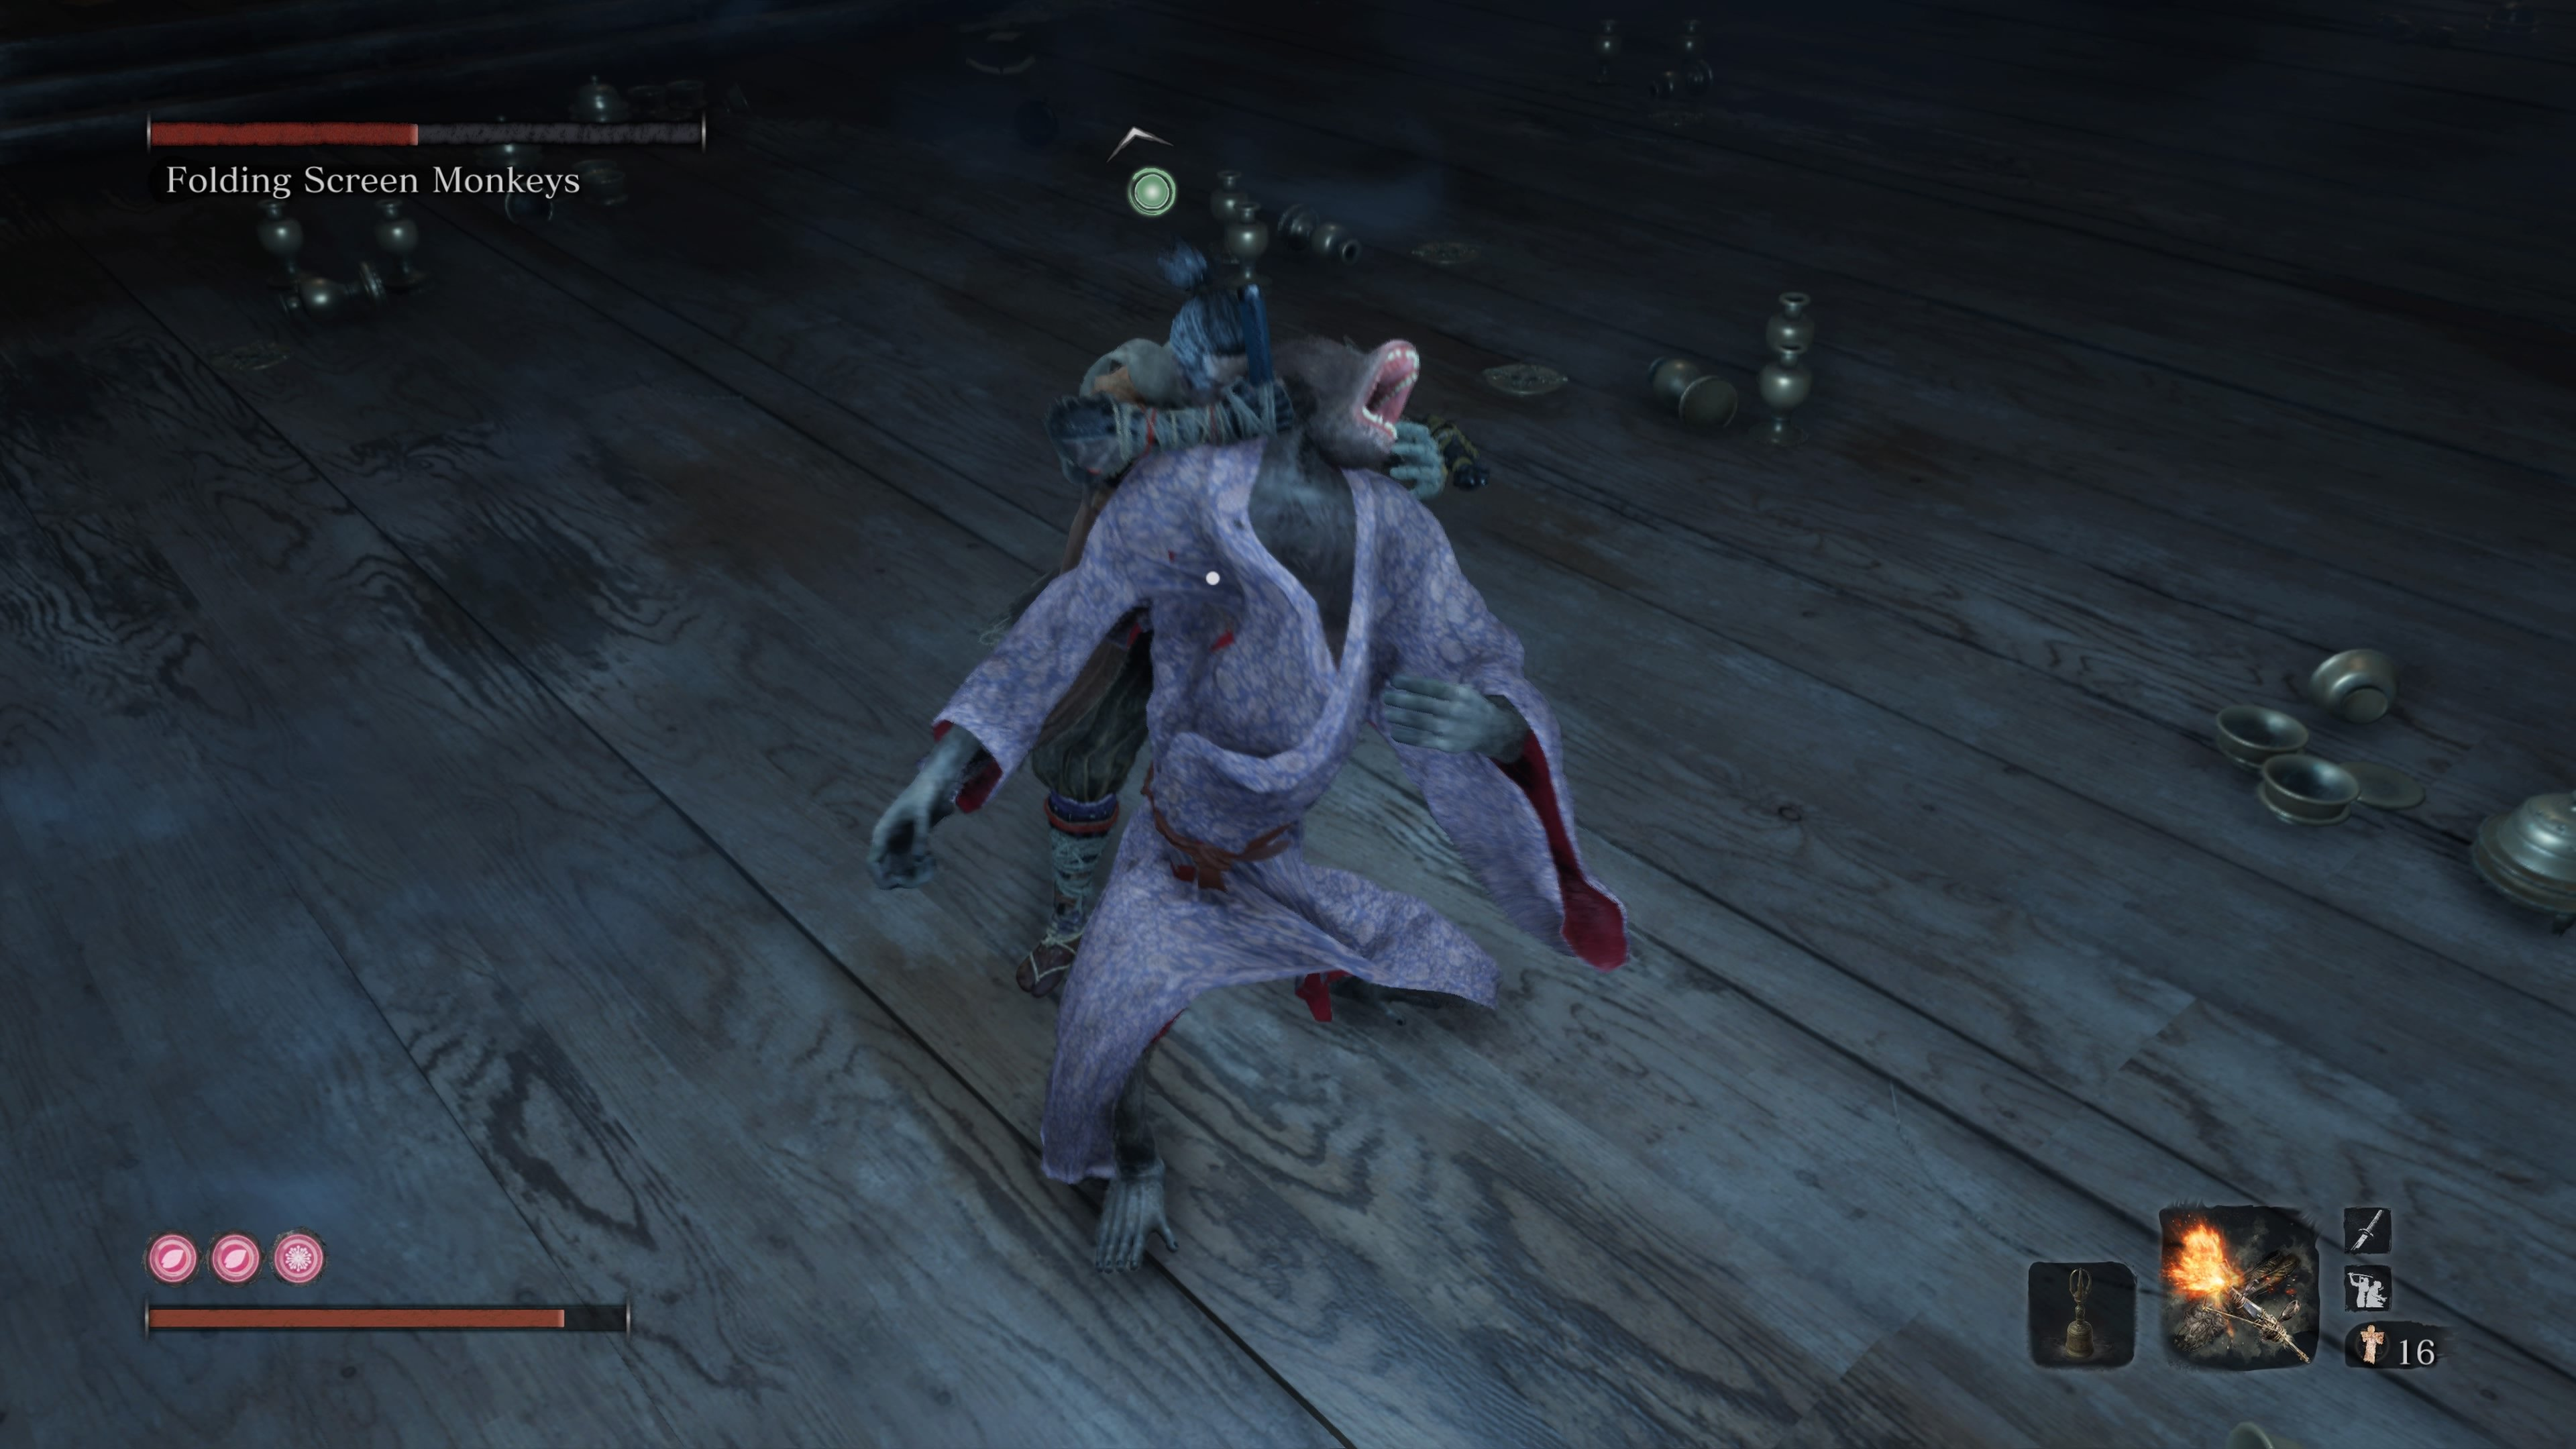 How to catch the purple kimono folding screen monkey sekiro